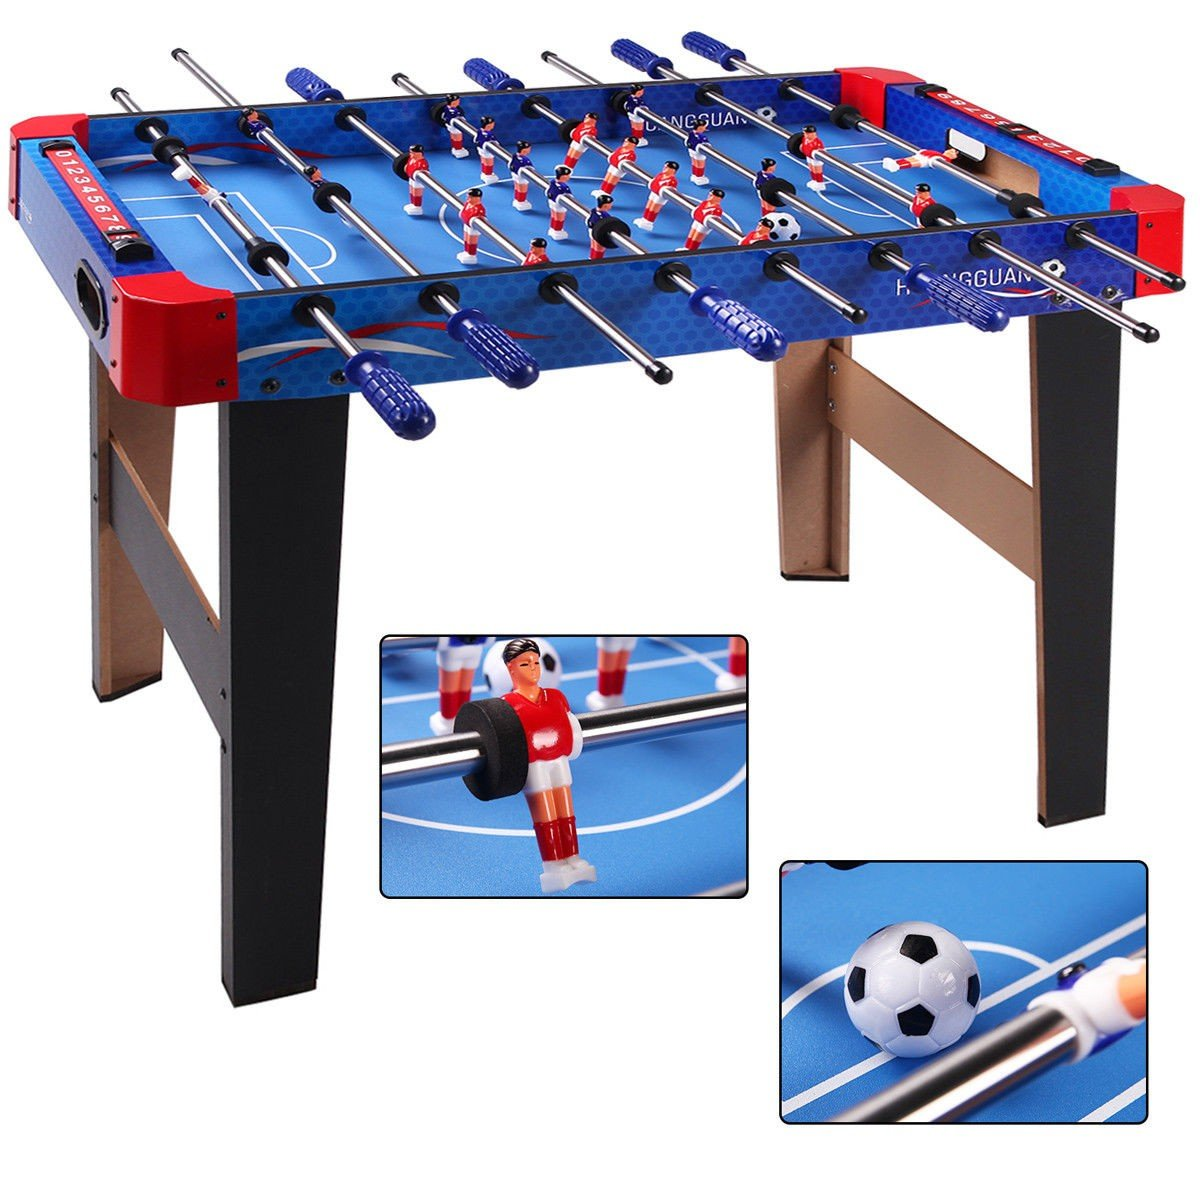 36'' Inch Indoor Arcade Game Foosball/Football Table for Recreation Living Room College Dormitory, Sturdy and Strong Built (Blue-Red, 36)